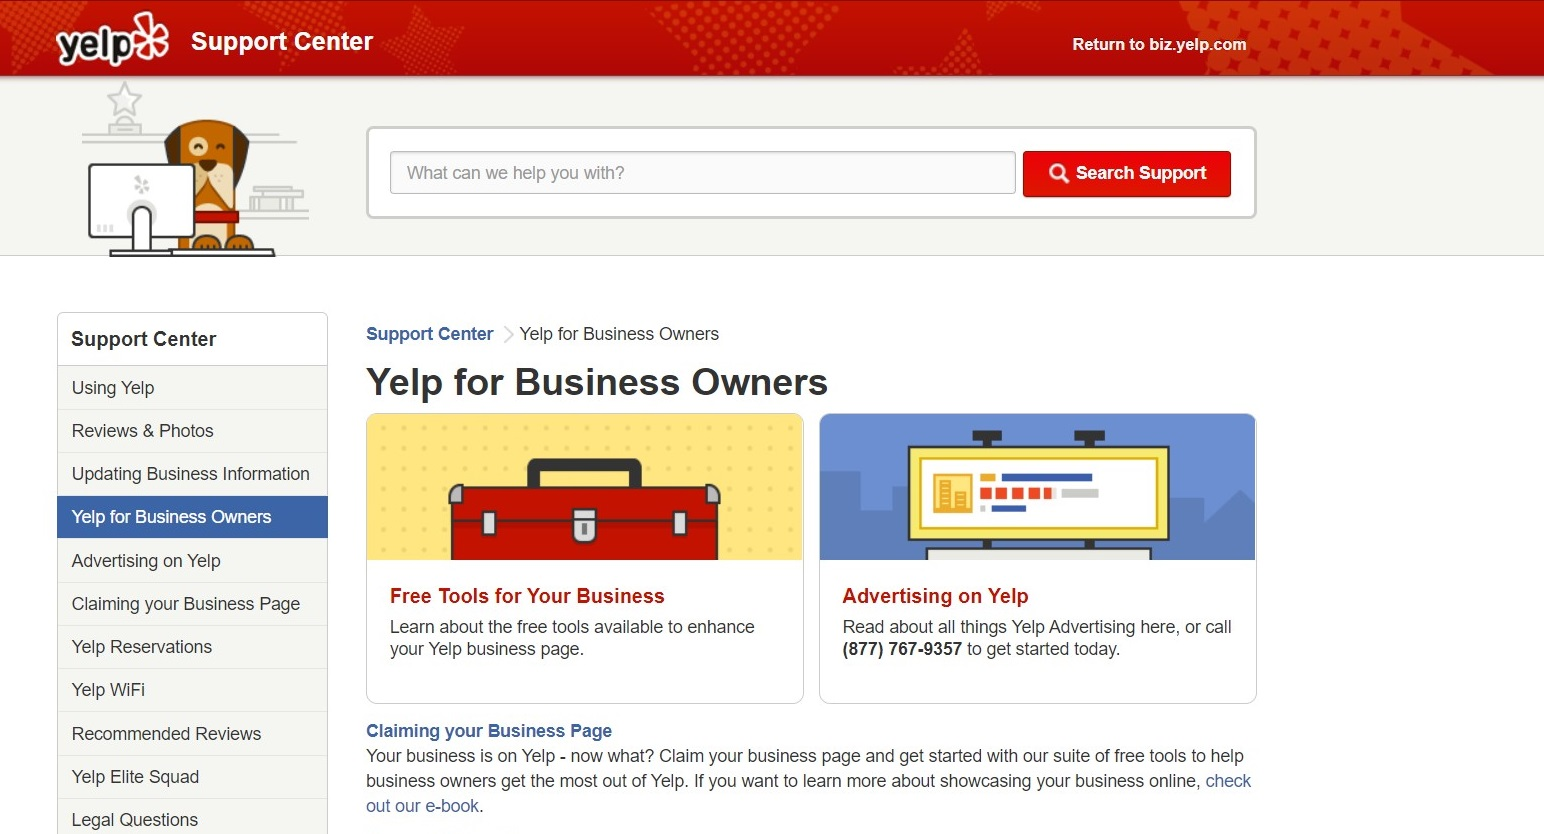 Yelp Marketing for Coworking Space Operators Business Owners Support Center